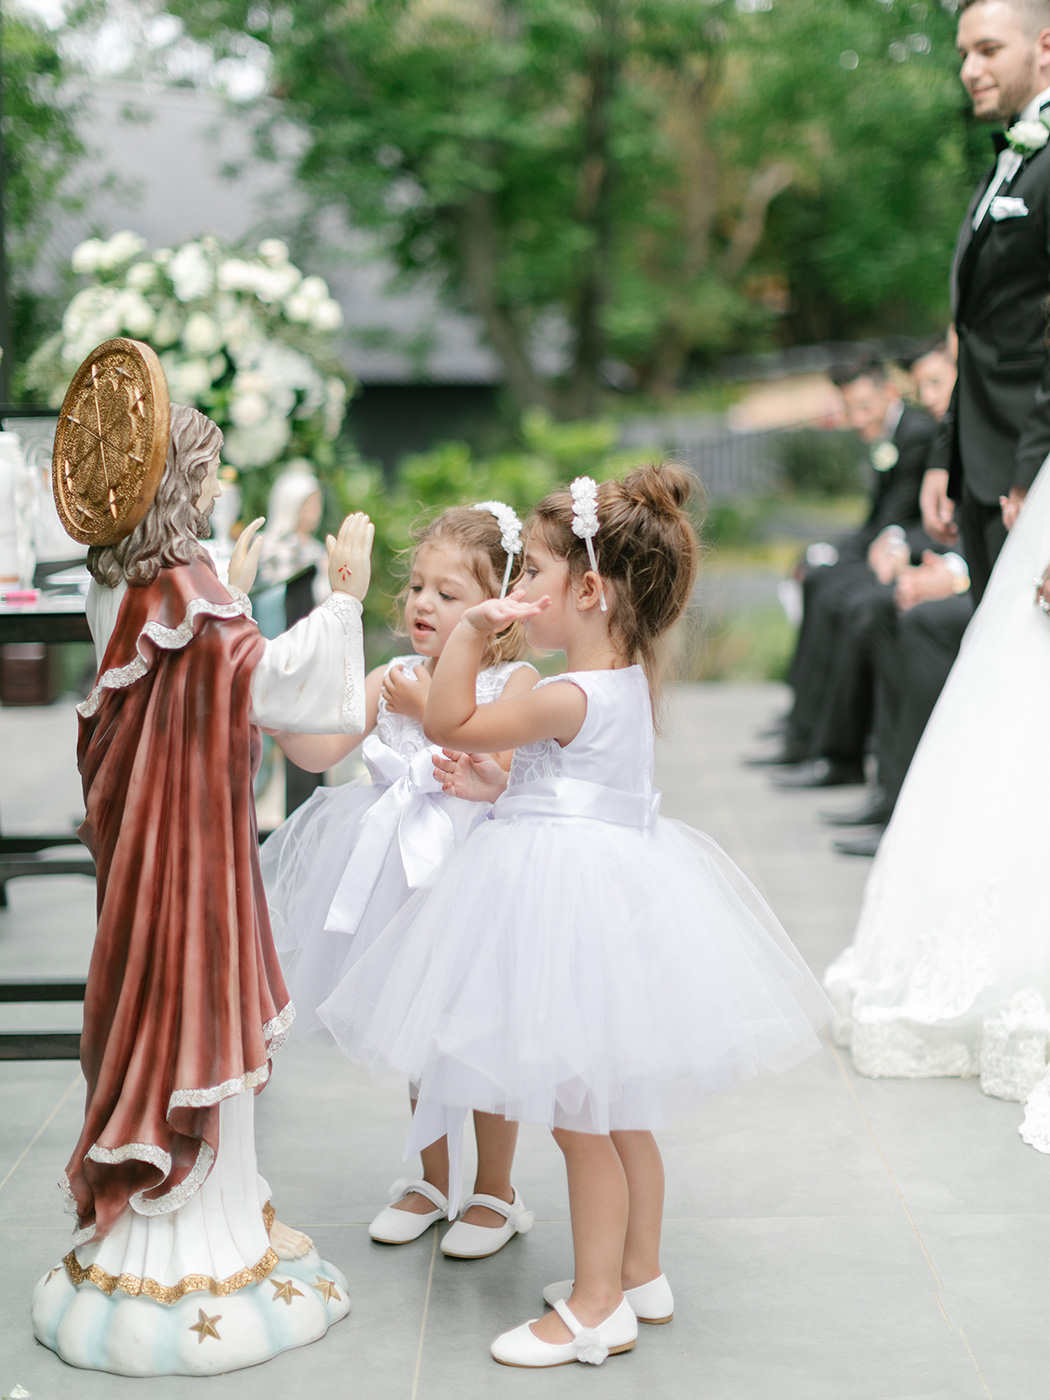 Cute Flowergirls | Rensche Mari Photography